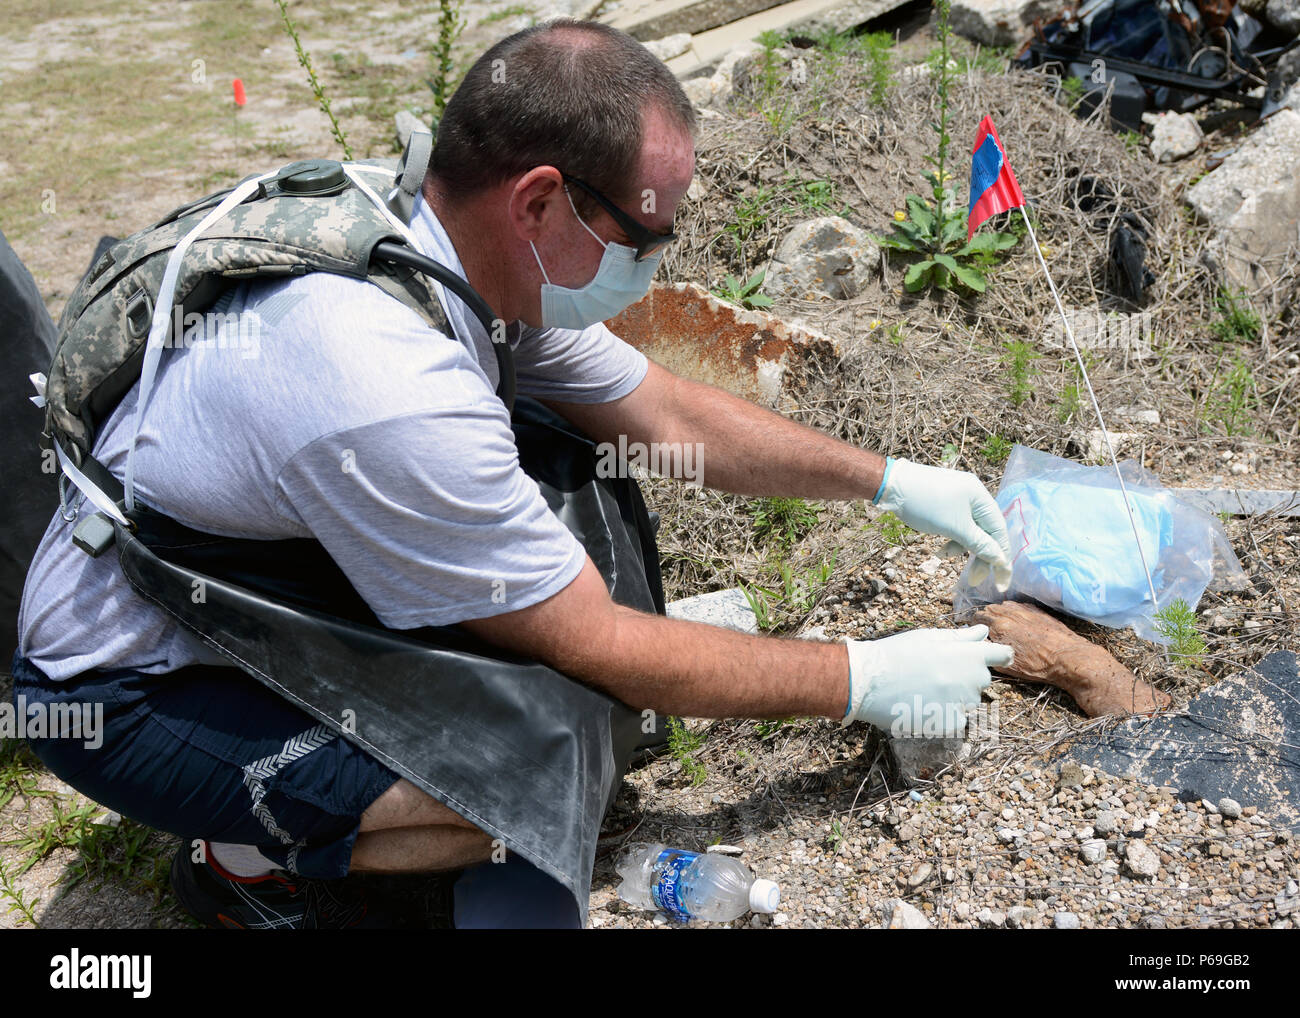 U.S. Air Force Tech. Sgt. Ethan Barnas prepares for the collection of a severed human hand cadaver during the Florida Emergency Mortuary Operations Response System (FEMORS) Hurricane Exercise (HUREX) Drill at Camp Blanding Joint Training Center in Starke, Fla., on May 18, 2016.The FEMORS HUREX Drill was an first of its kind operational drill designed to establish a learning environment for FEMORS, District Medical Examiner offices (District 4 and District 8), the Florida CBRNE Enhanced Response Force Package (CERFP) and 254th Transportation Company to exercise emergency response plans, policie Stock Photo